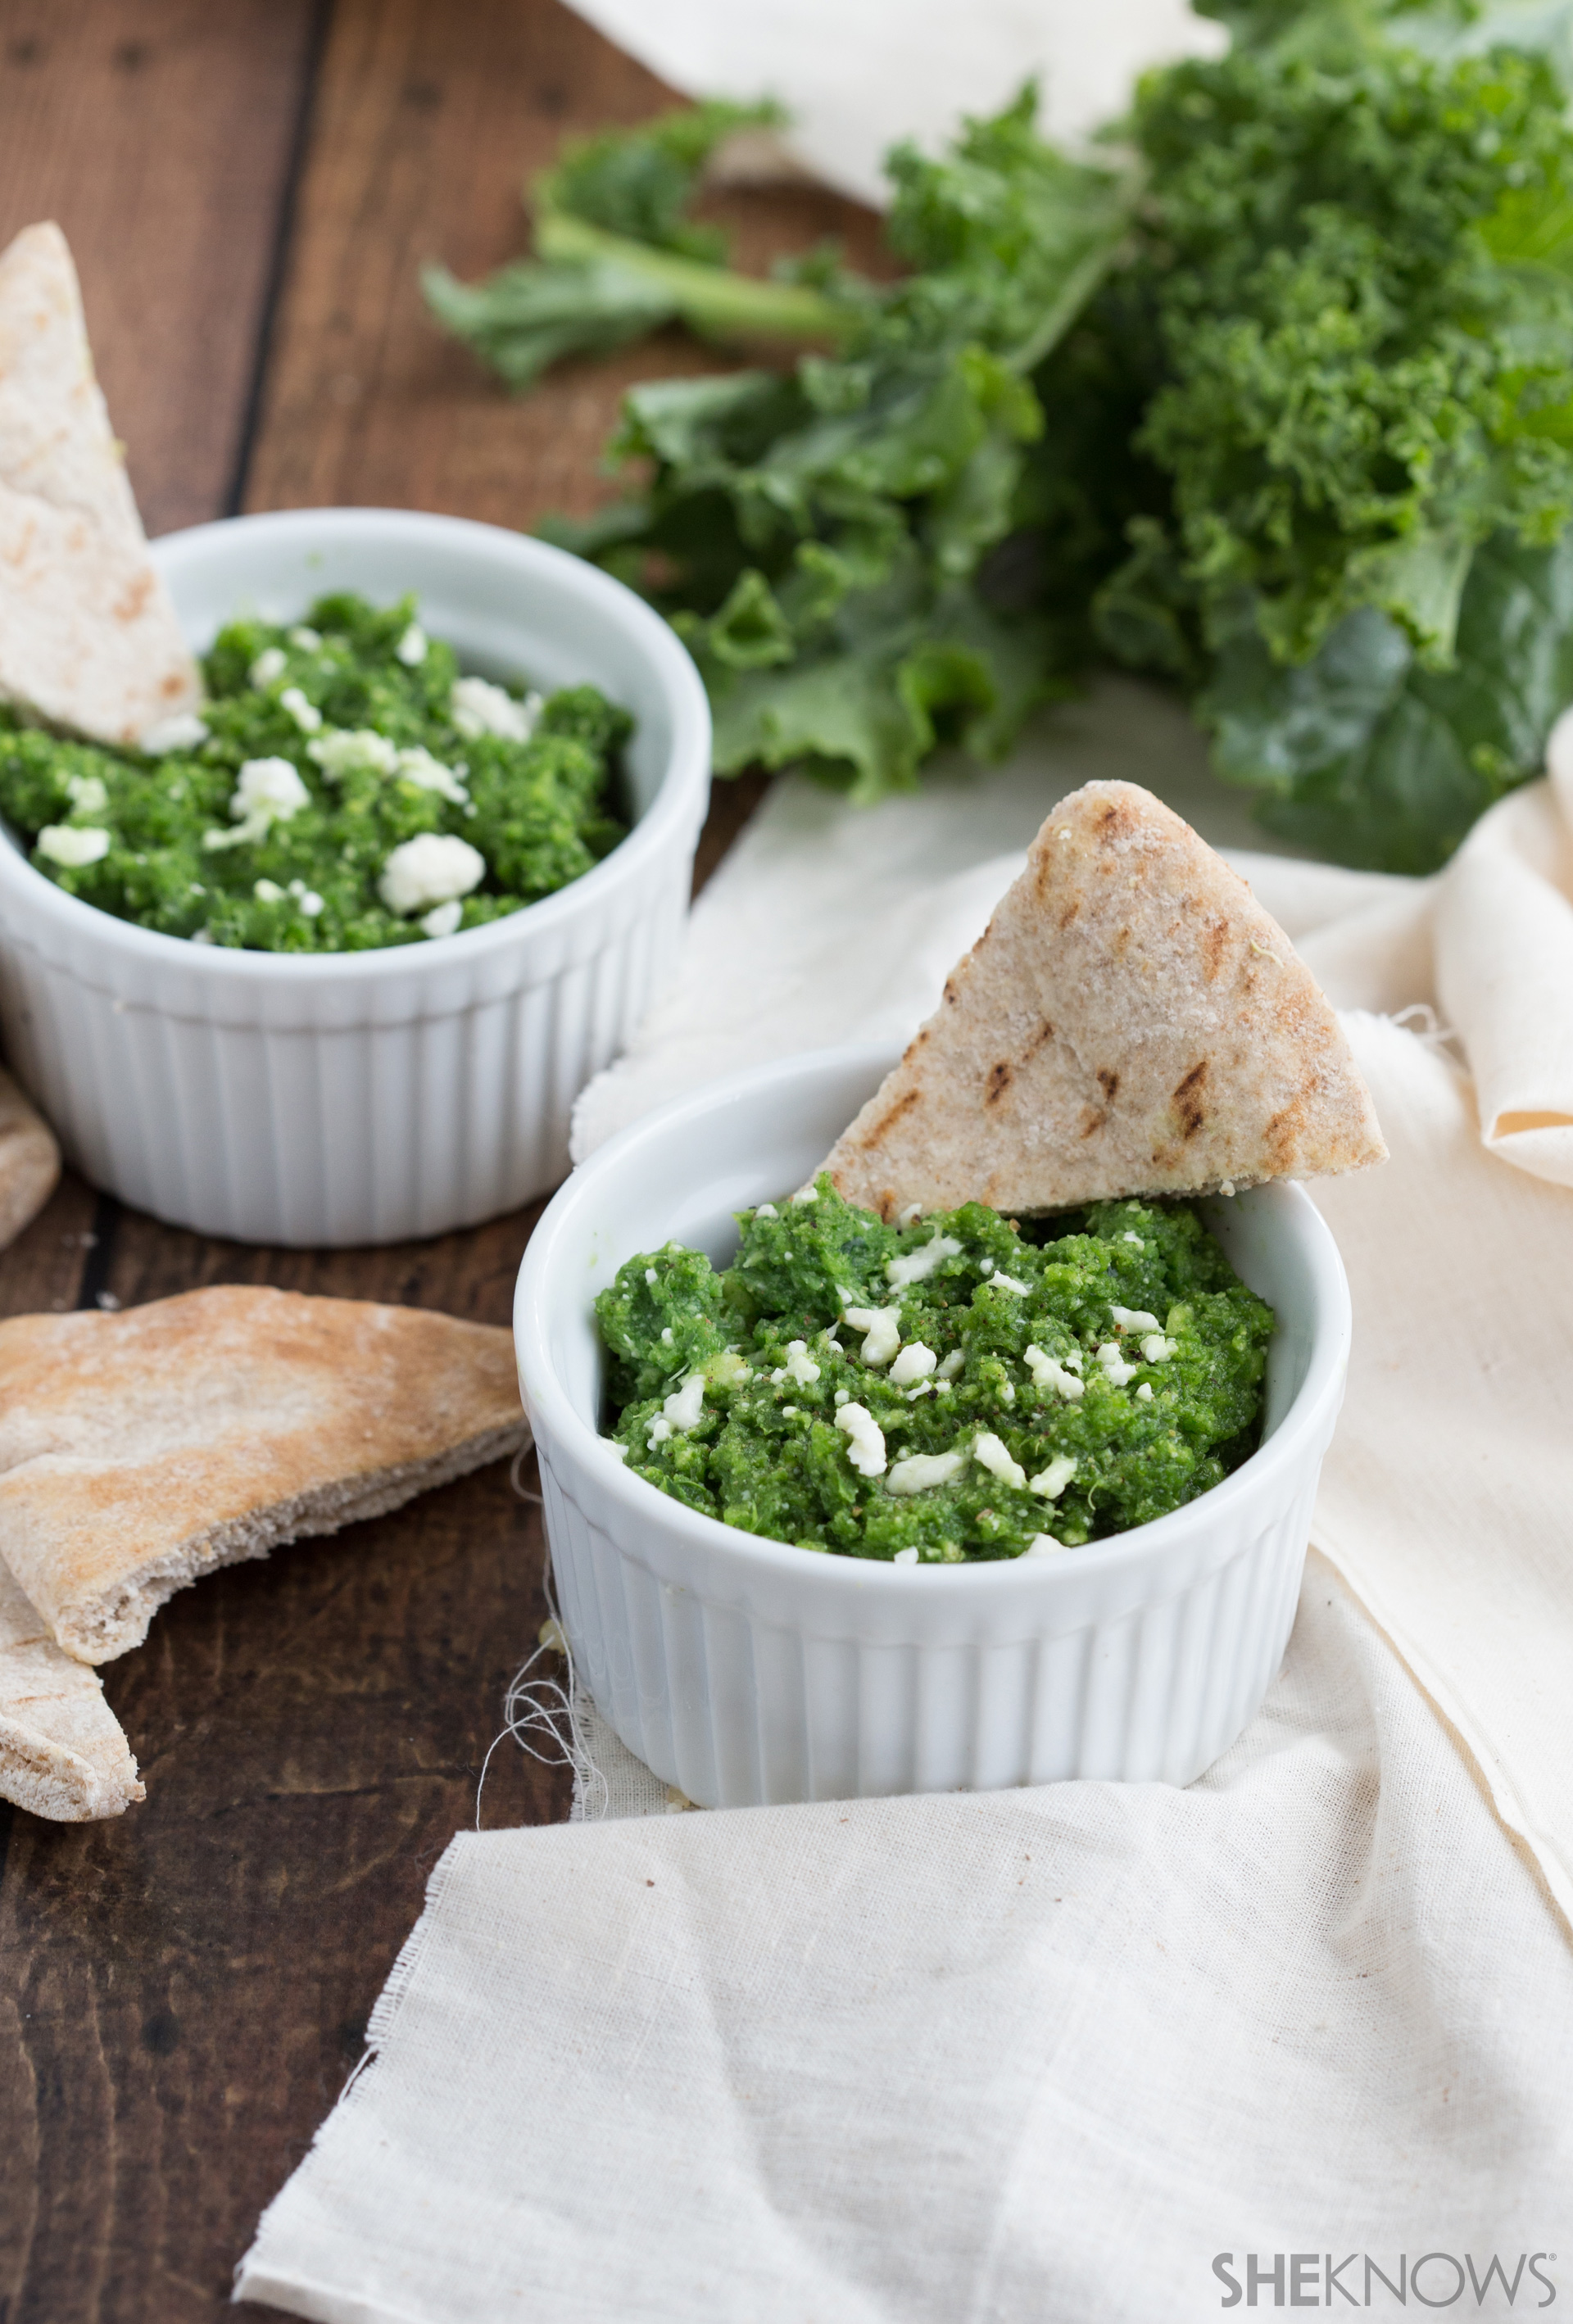 Dive into this delicious dip made with kale, ricotta and Parmesan